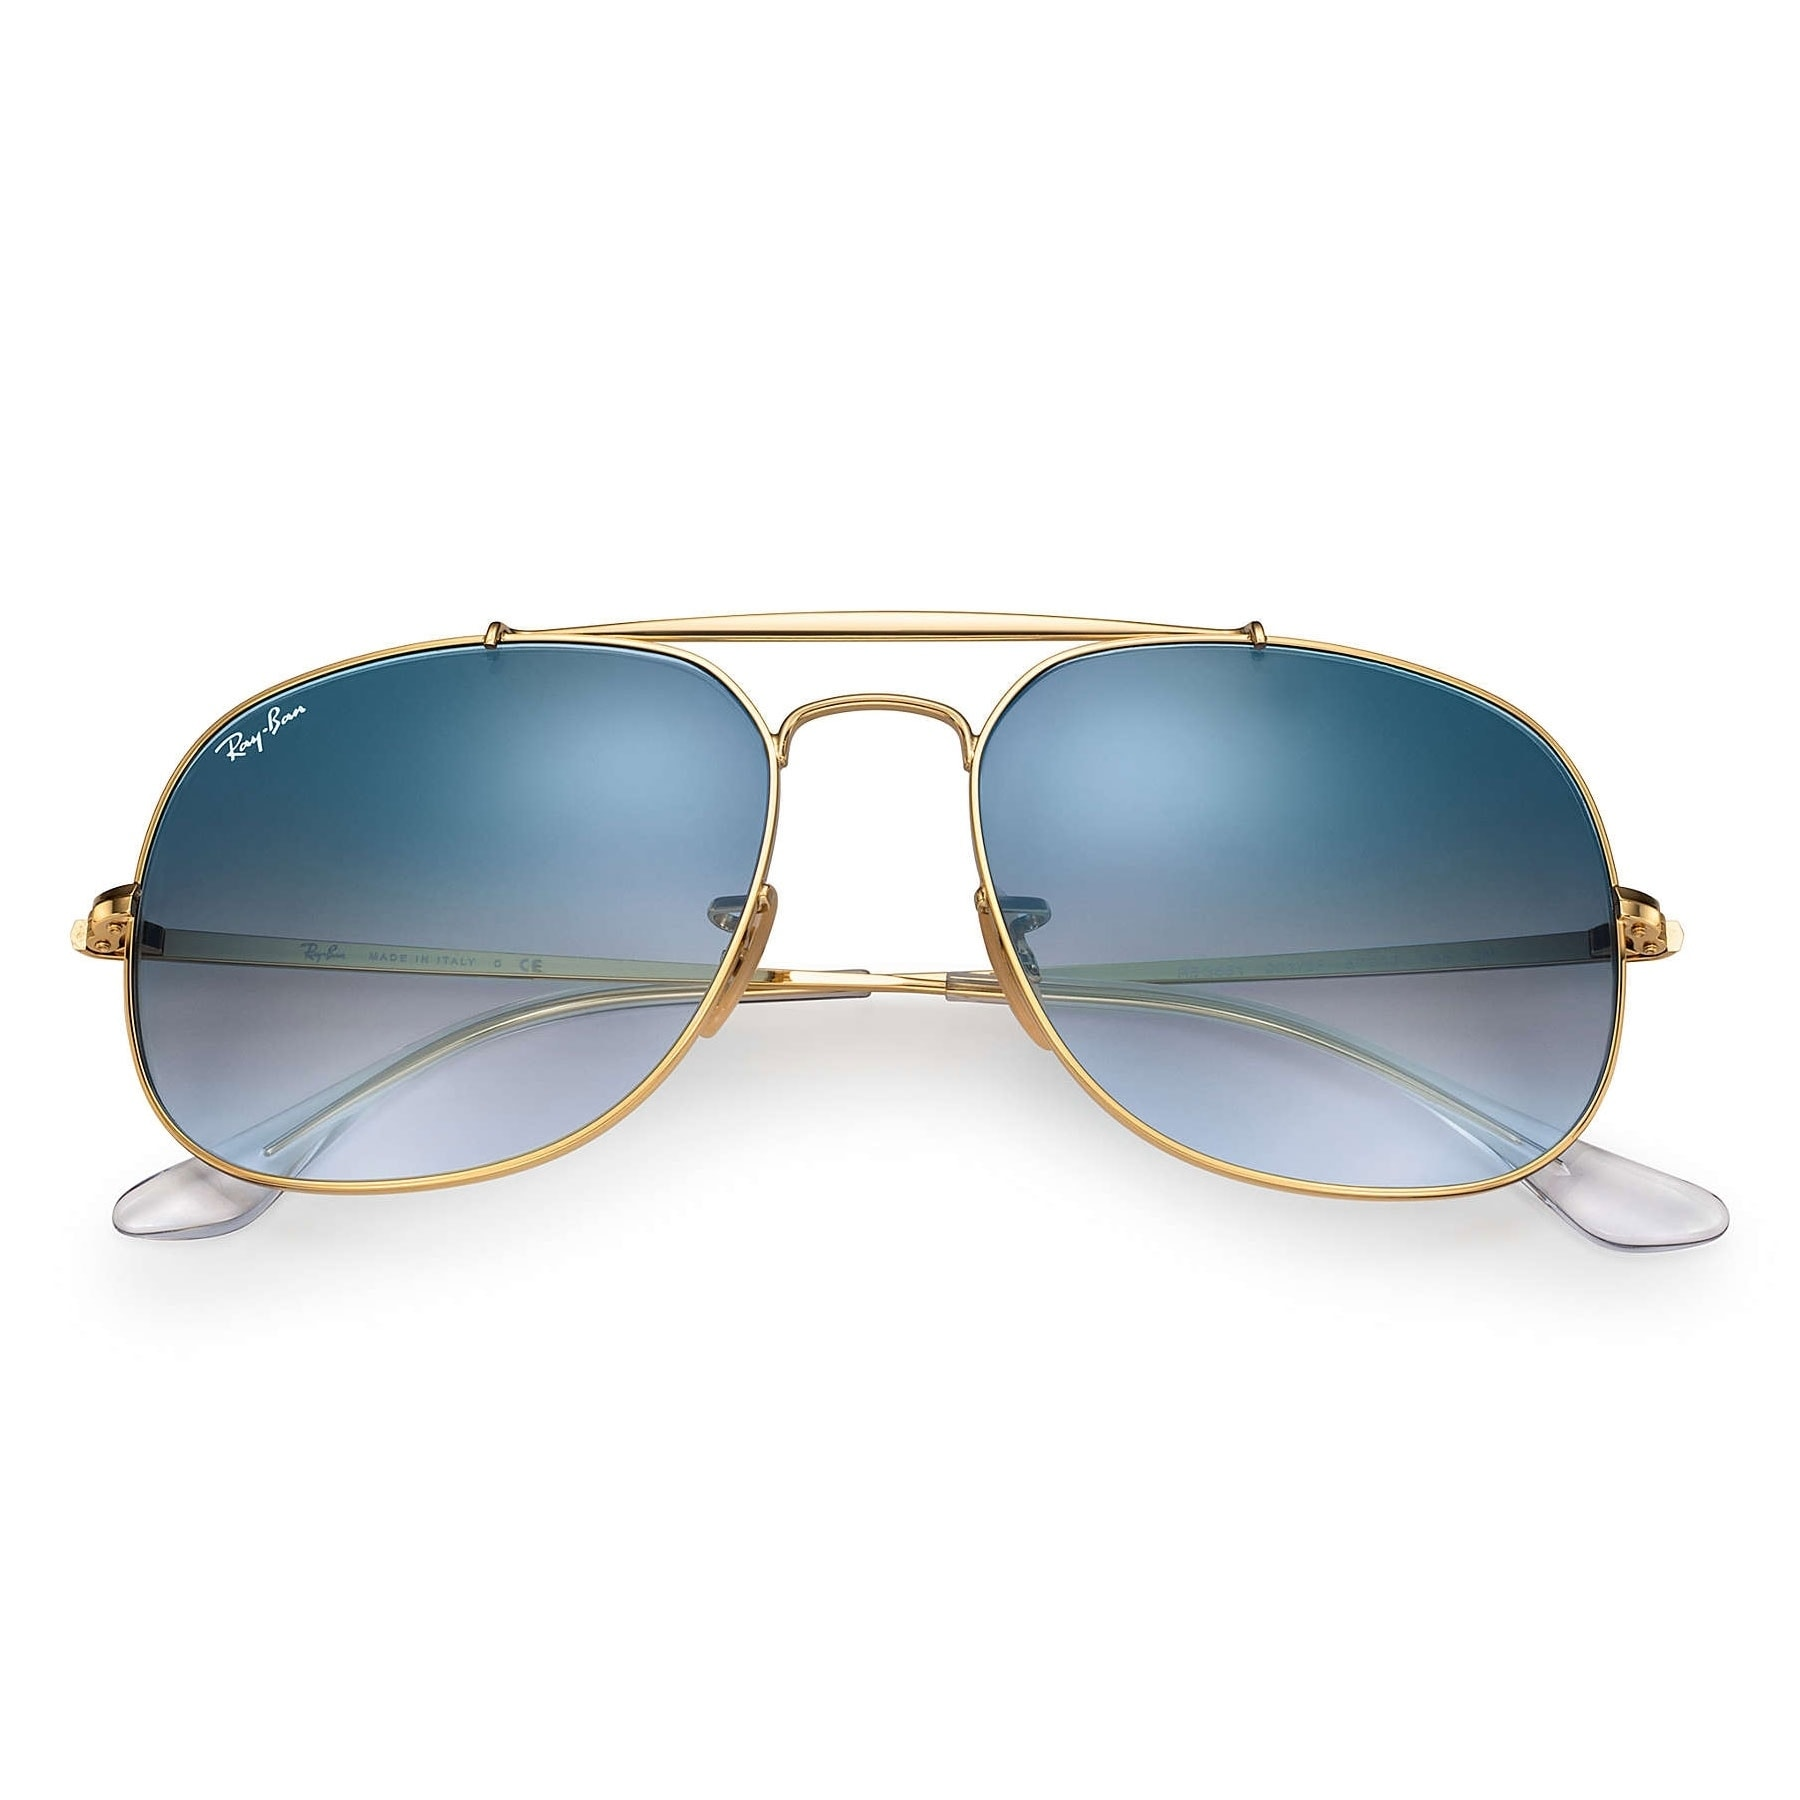 4b6e75418fe66c Shop Ray-Ban RB3561 General Sunglasses Gold  Light Blue Gradient 57mm -  Free Shipping Today - Overstock.com - 20603407